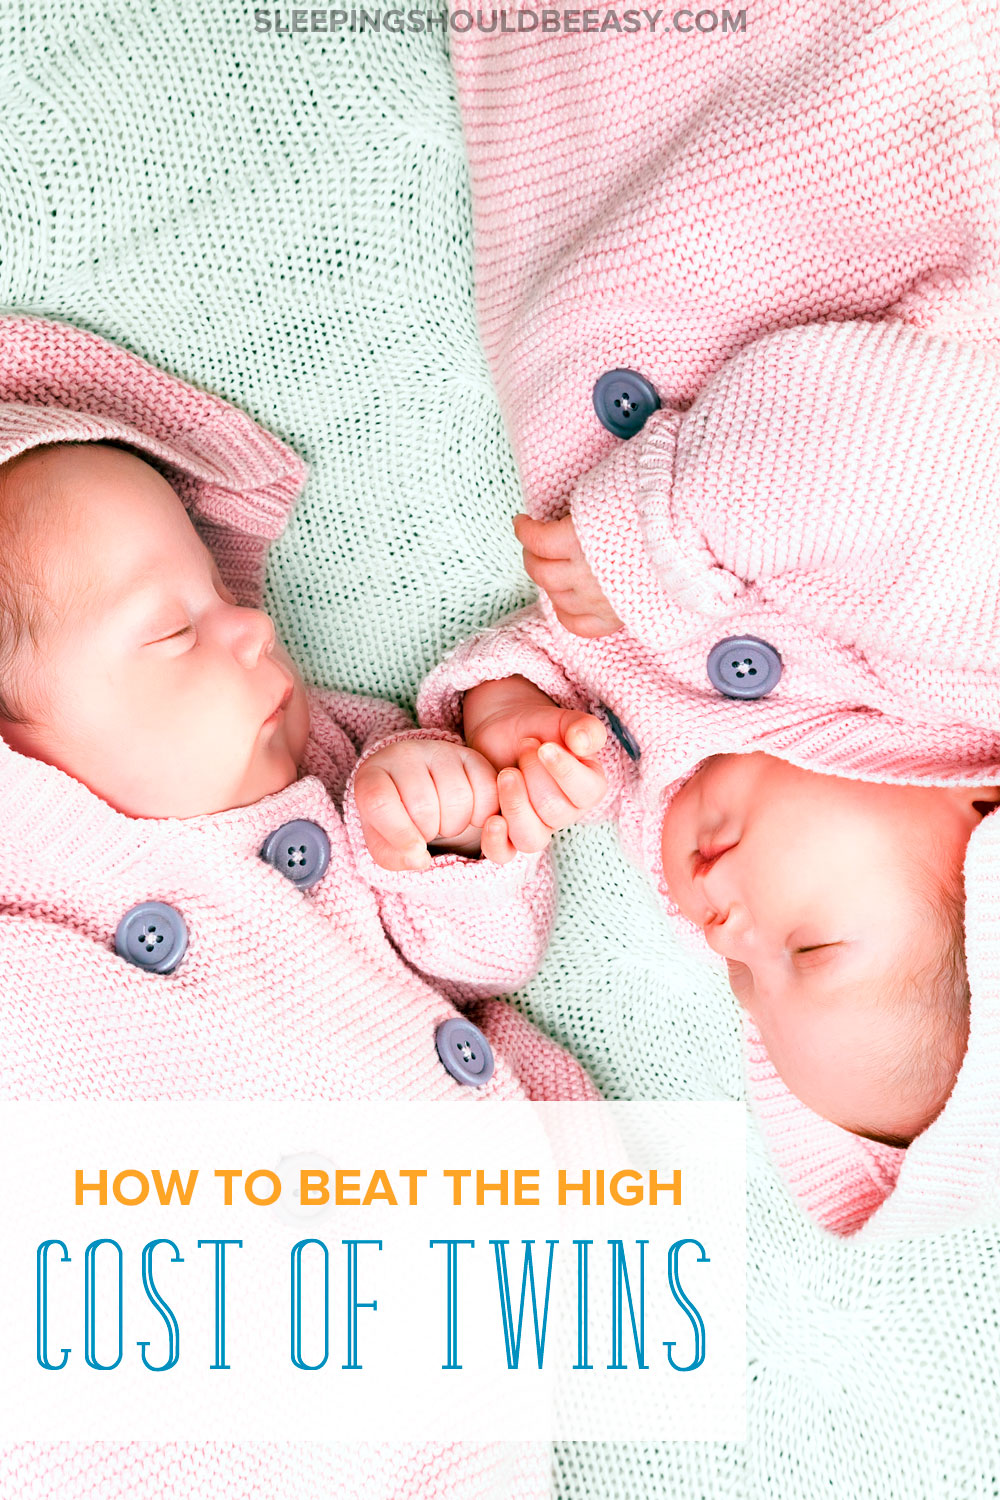 Worried about twin expenses? Learn the sneaky ways to beat the cost of raising twins — a must for moms who want to learn how to save money with twins!